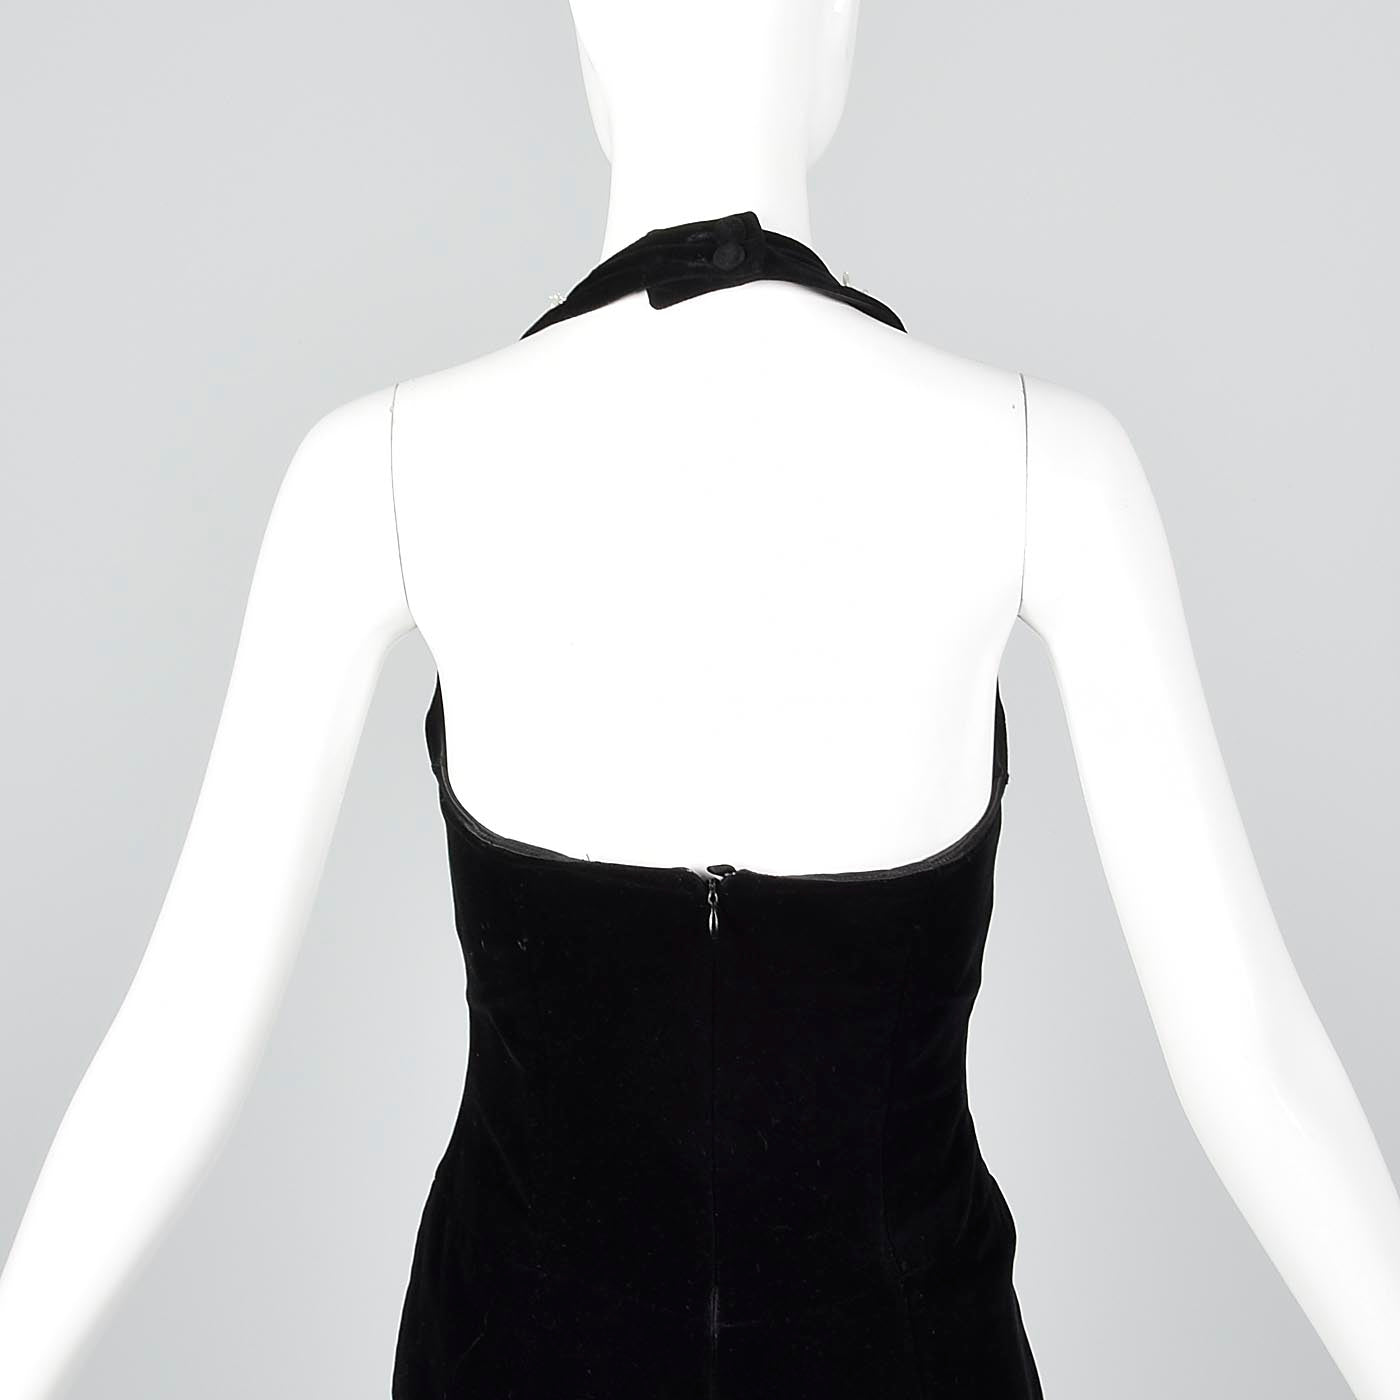 1980s Escada Black Velvet Dress with Faux Pearl Trim